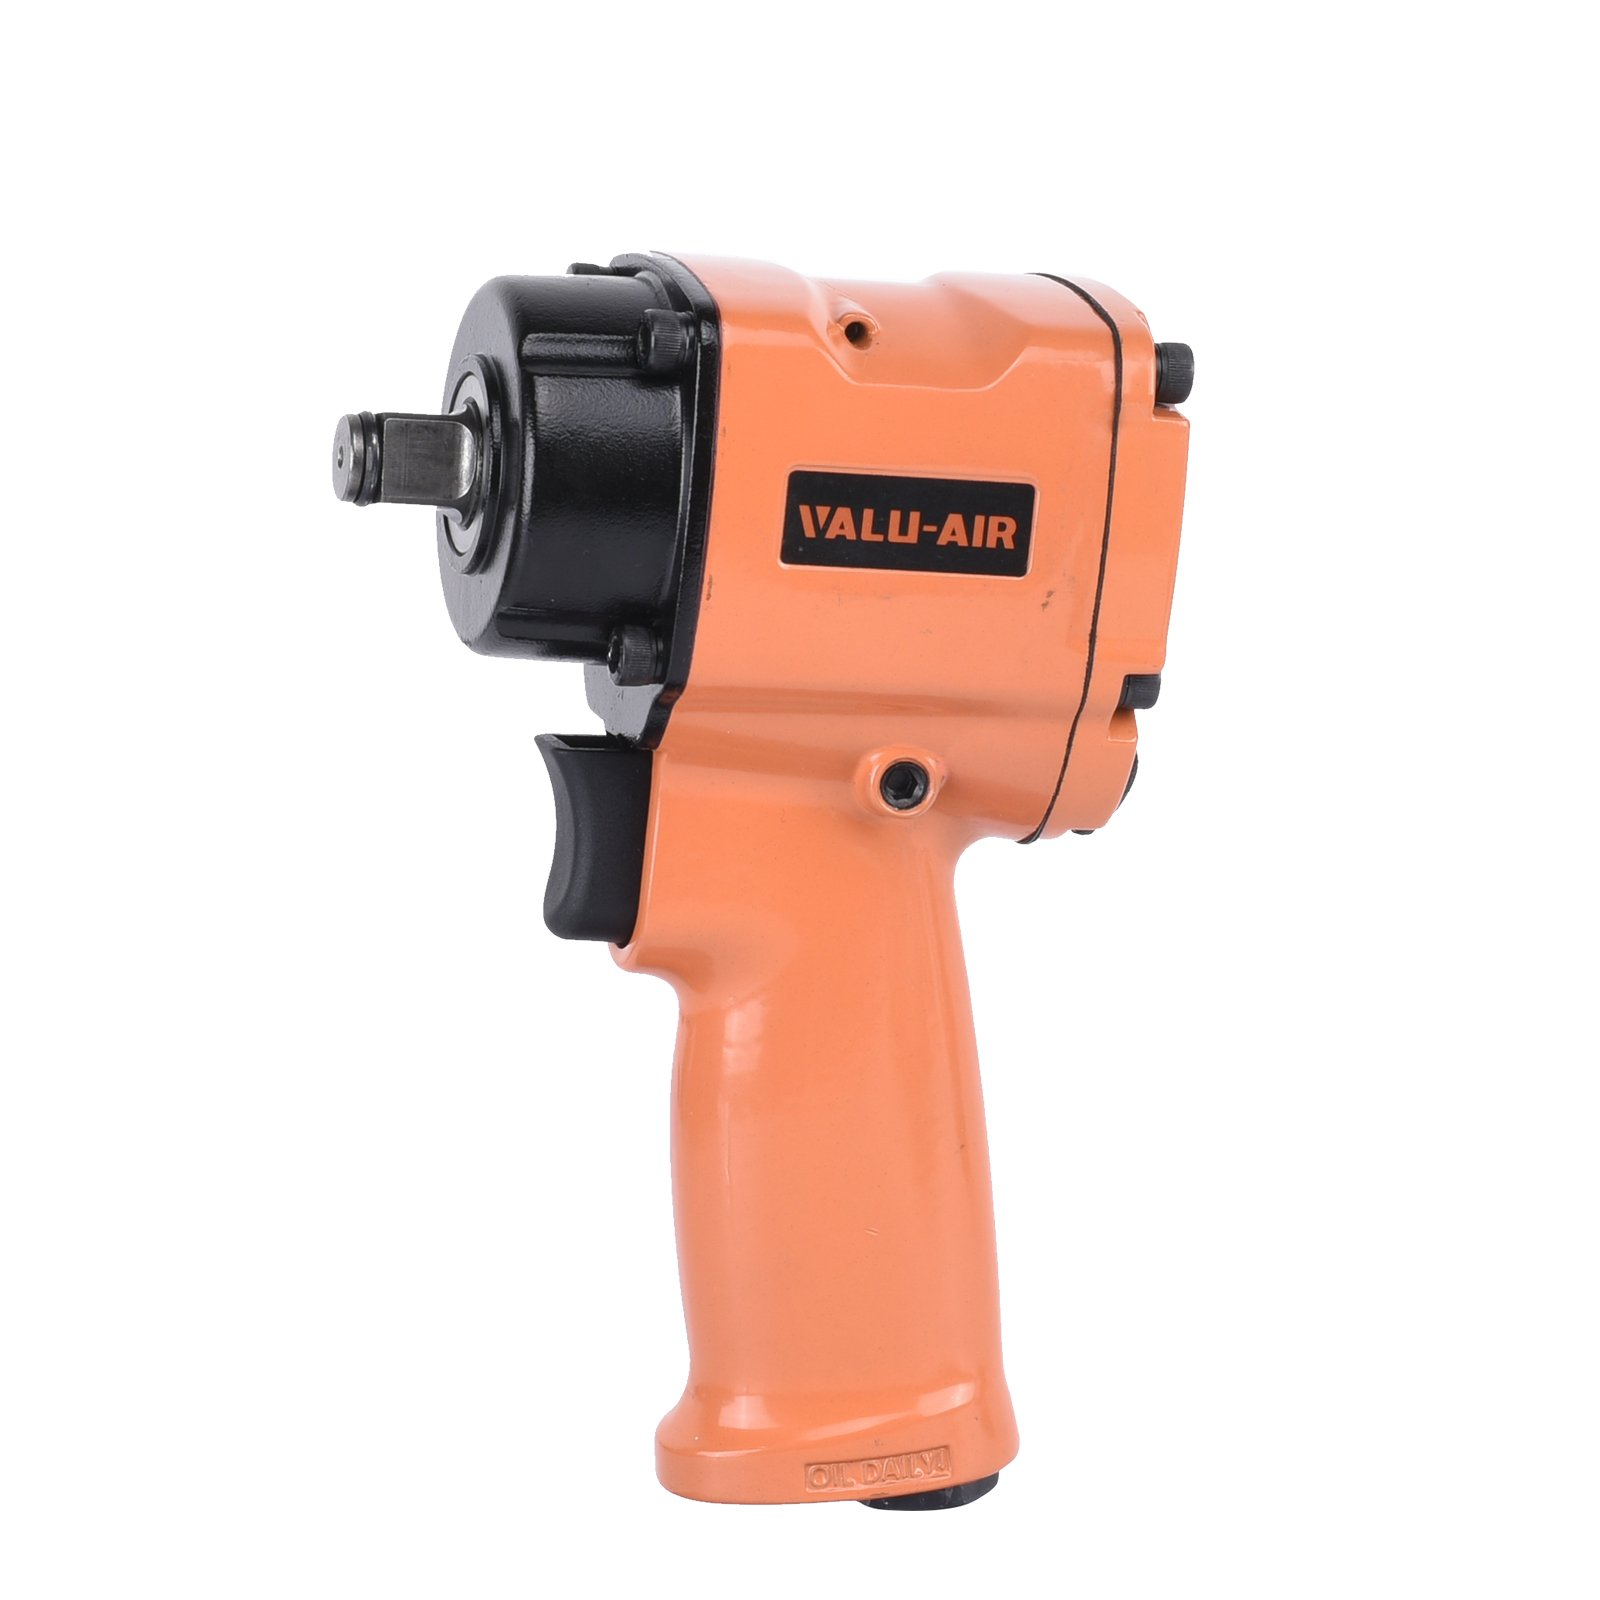 Valu-Air RP7426 Professional 1/2 Mini Impact Wrench